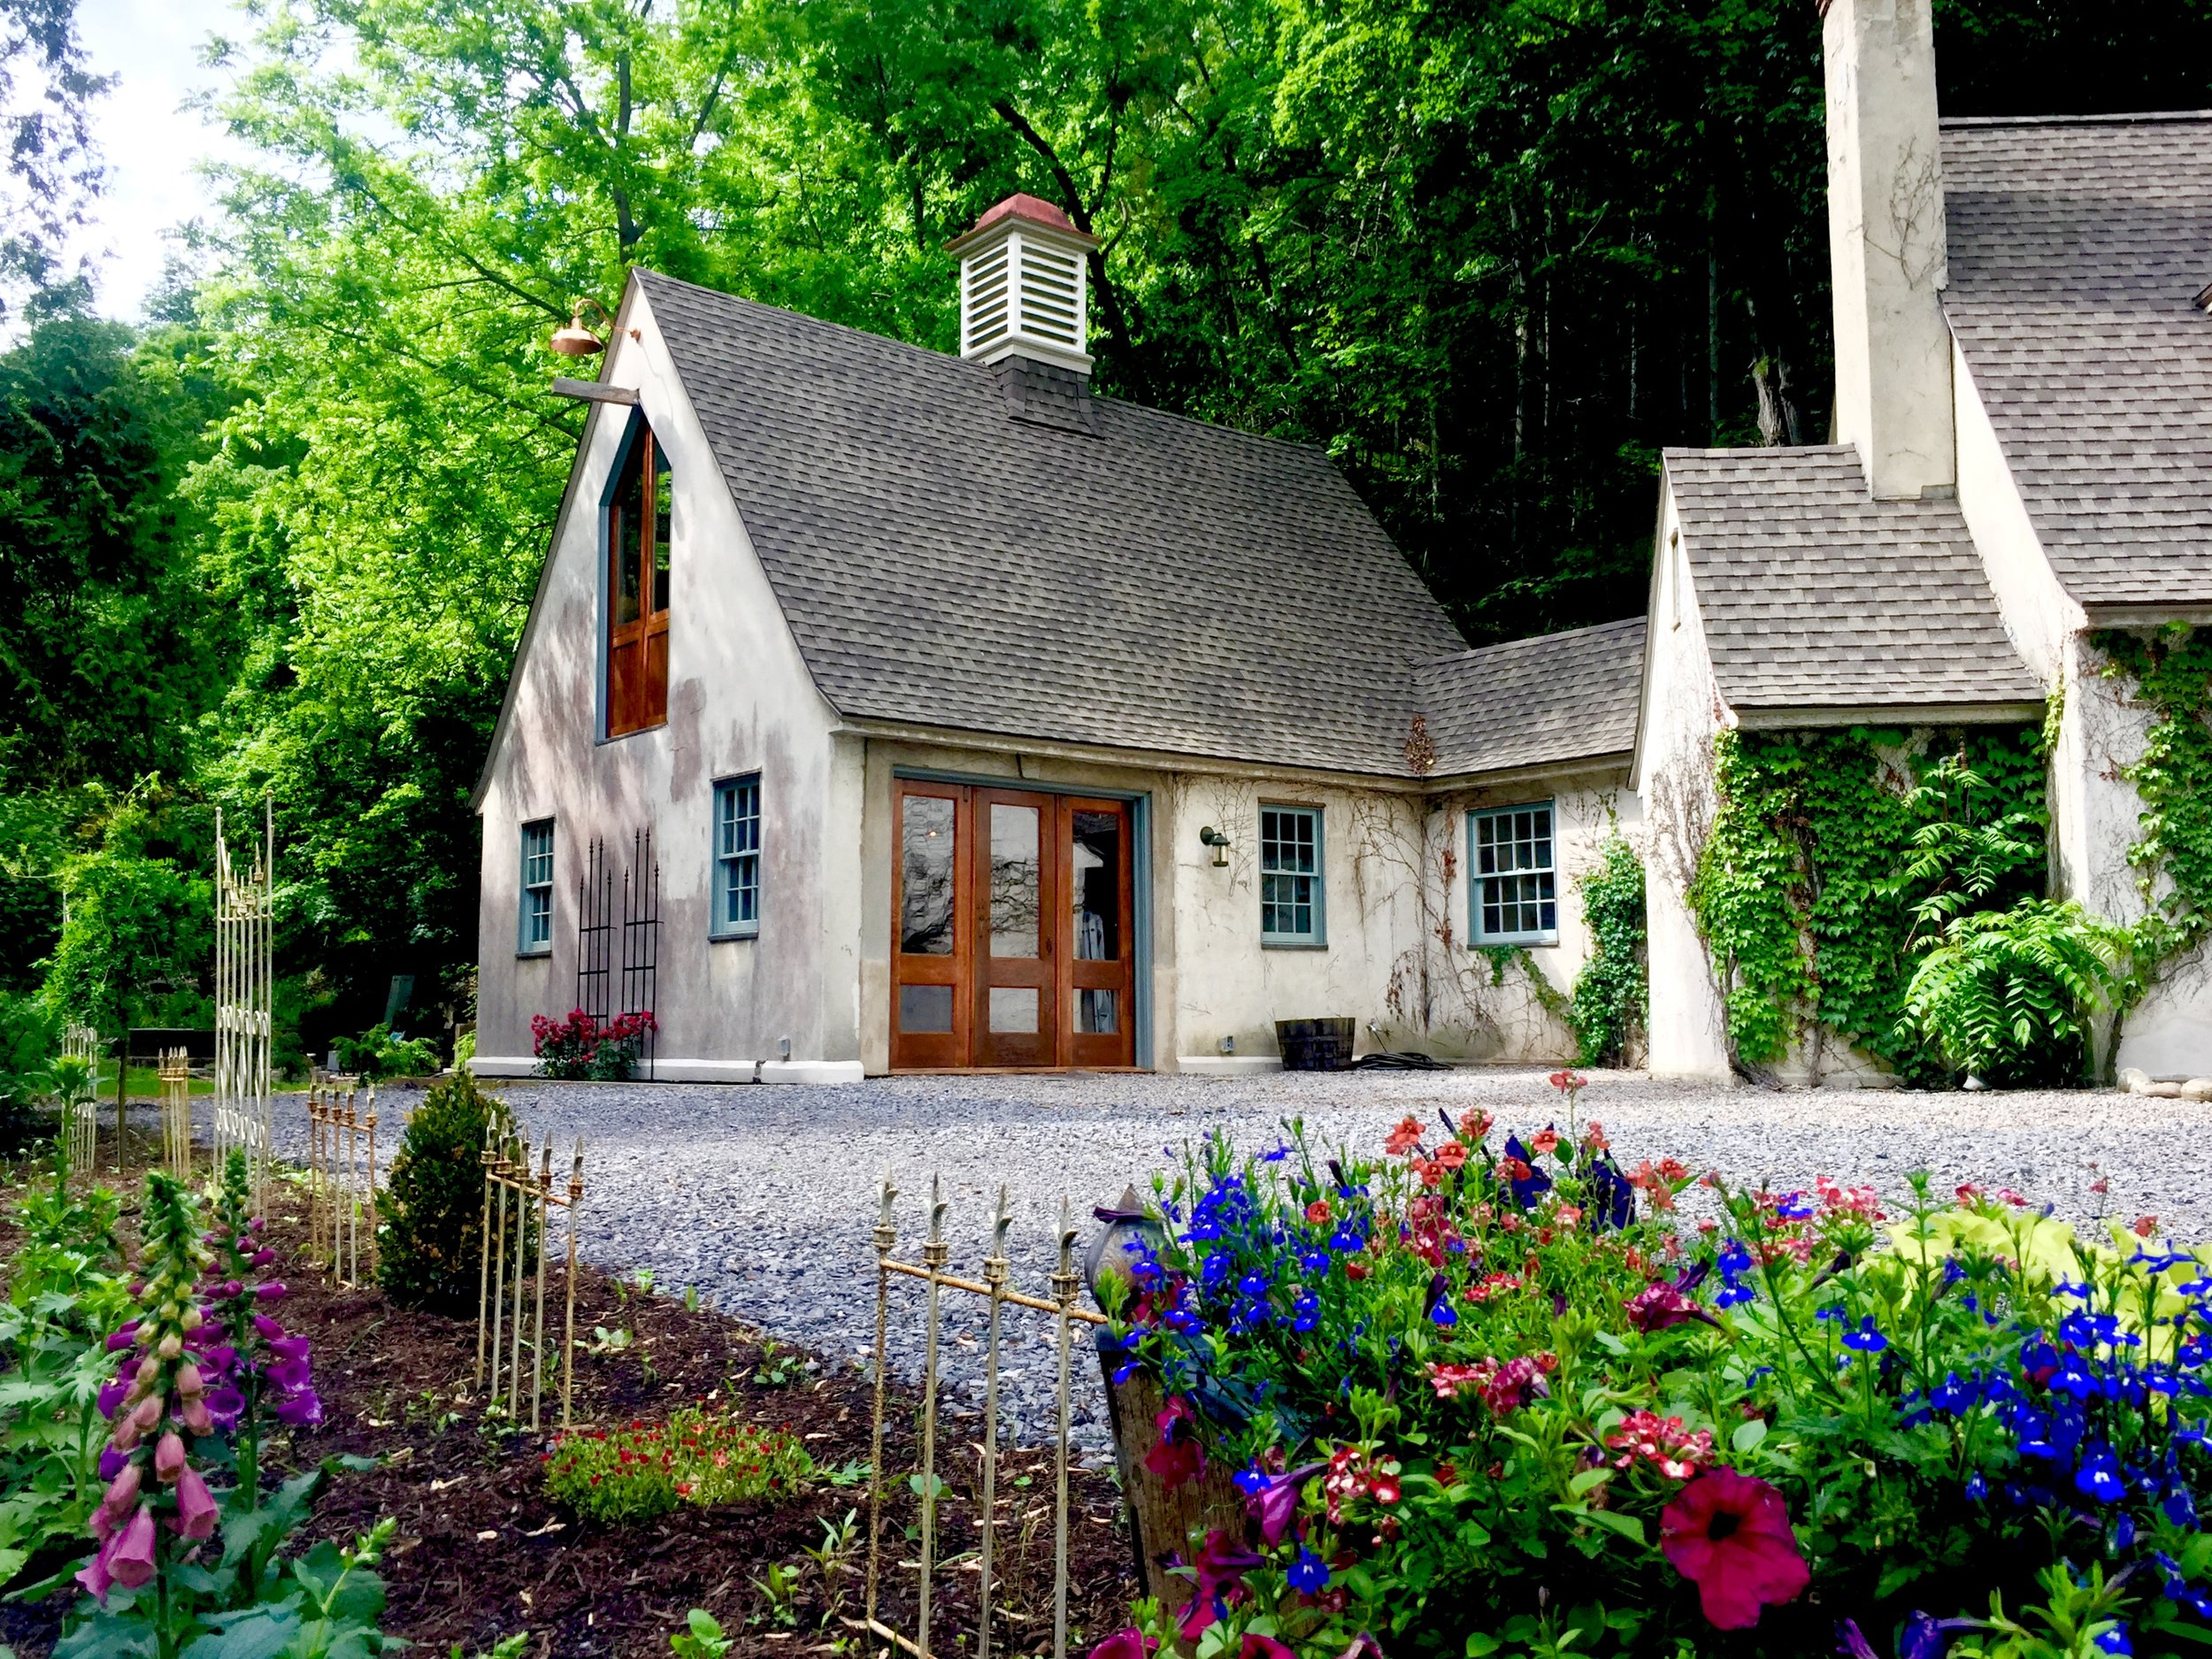 THE GUEST HOUSE For a more rustic experience, stay in the Guest House, with its cozy downstairs stable bedroom, romantic hayloft, and waterfall shower bath. Sleeps 4 -